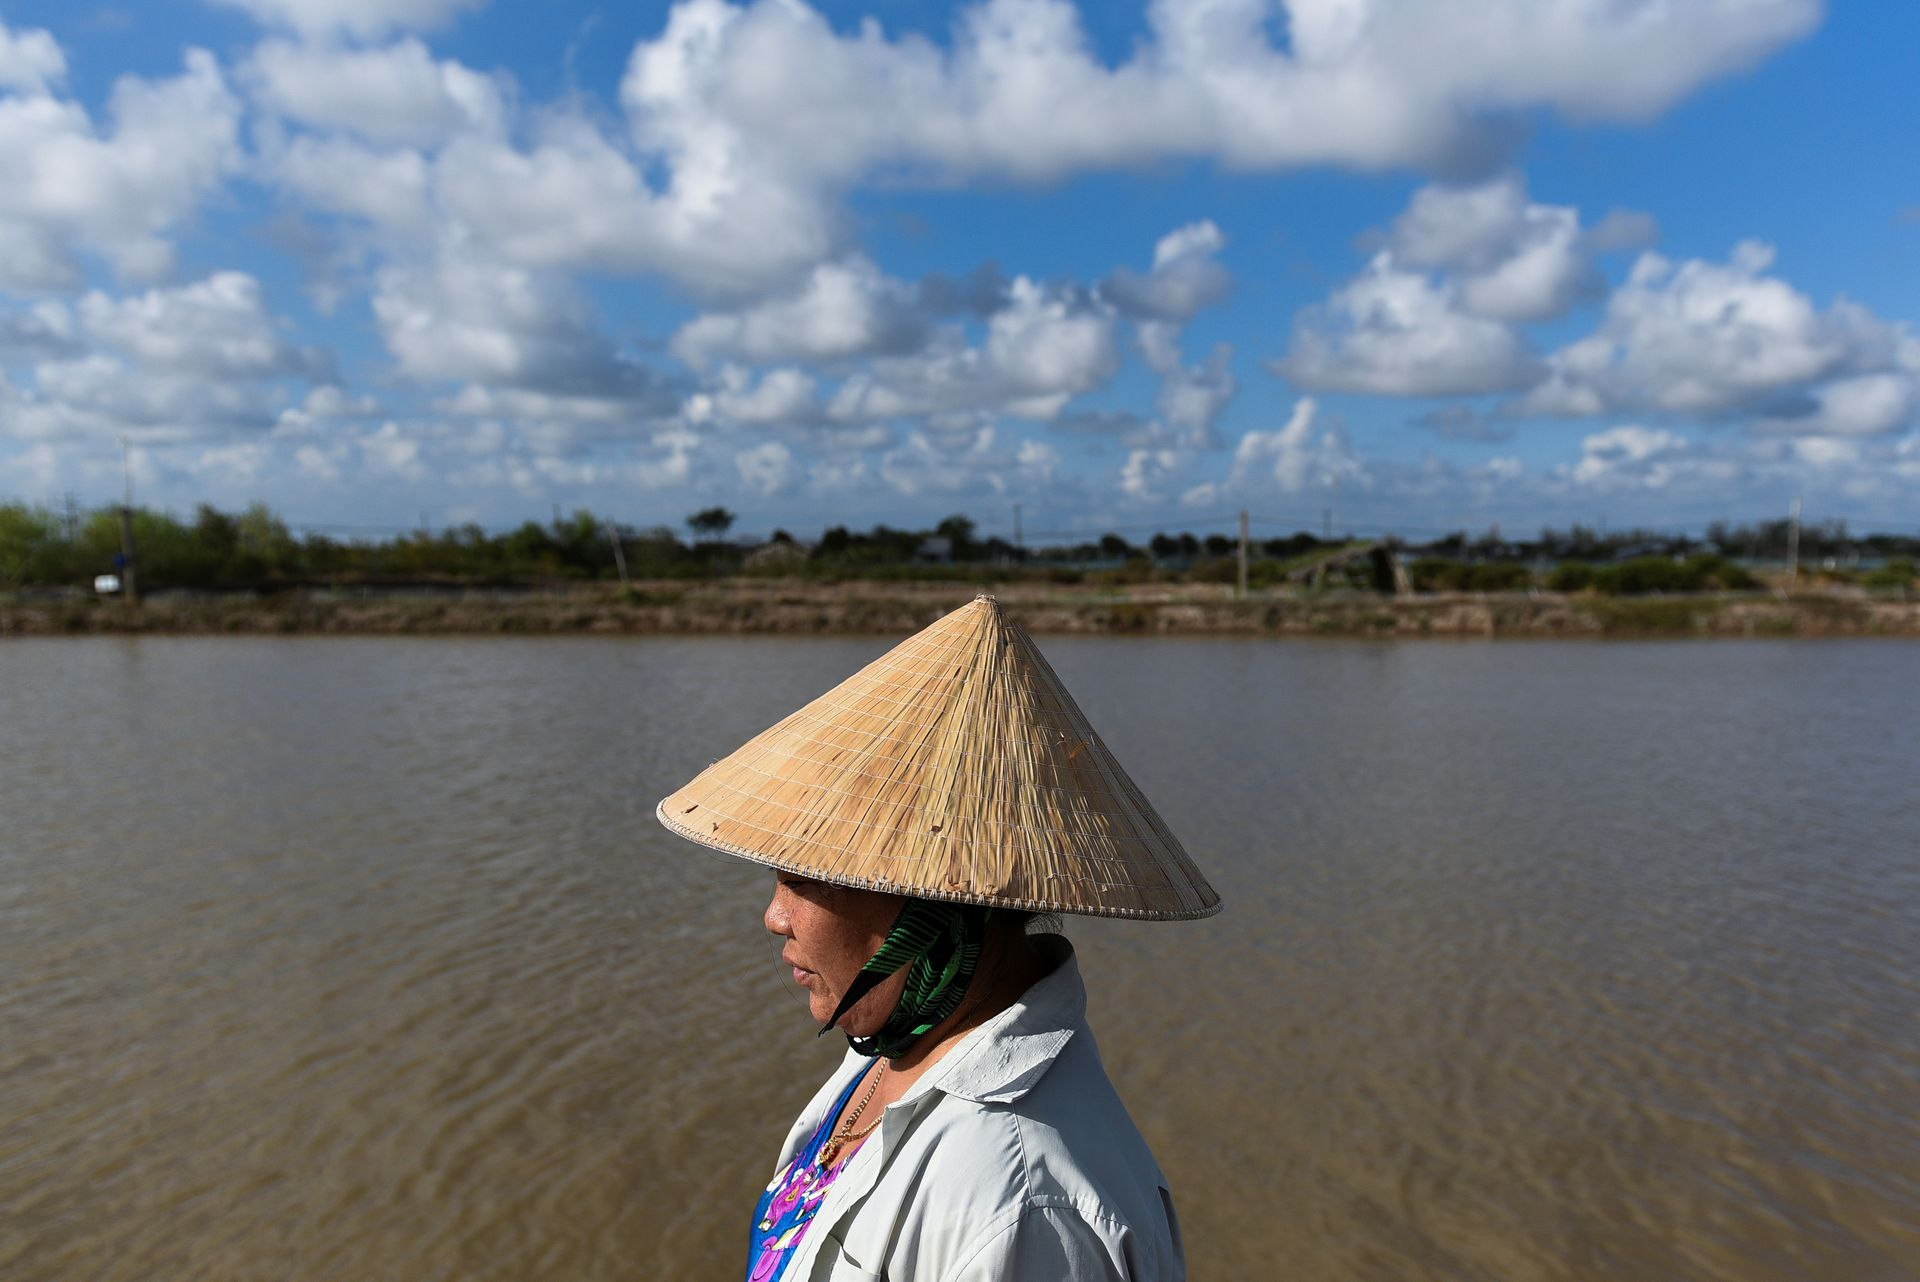 Ta Thi Thanh Thuy, 52, walks past the place where she used to grow rice before her family switched to shrimps farming in Soc Trang Province, Vietnam, May 1, 2021. Photo by Reuters/Thanh Hue.